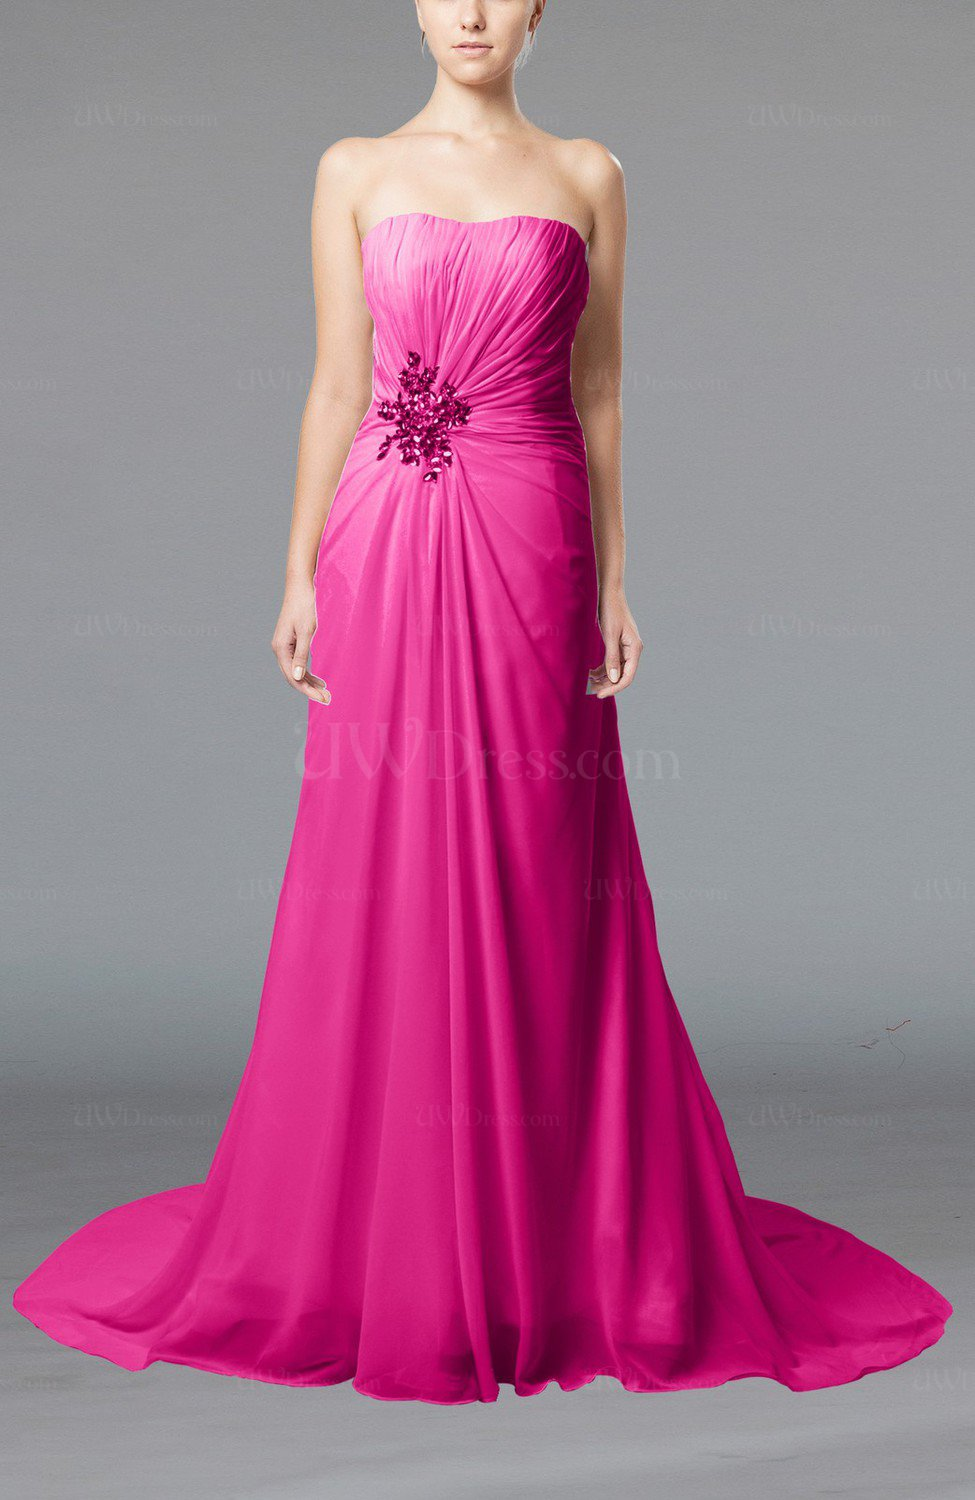 Hot Pink Elegant Hall Column Strapless Sleeveless Lace up Court ...